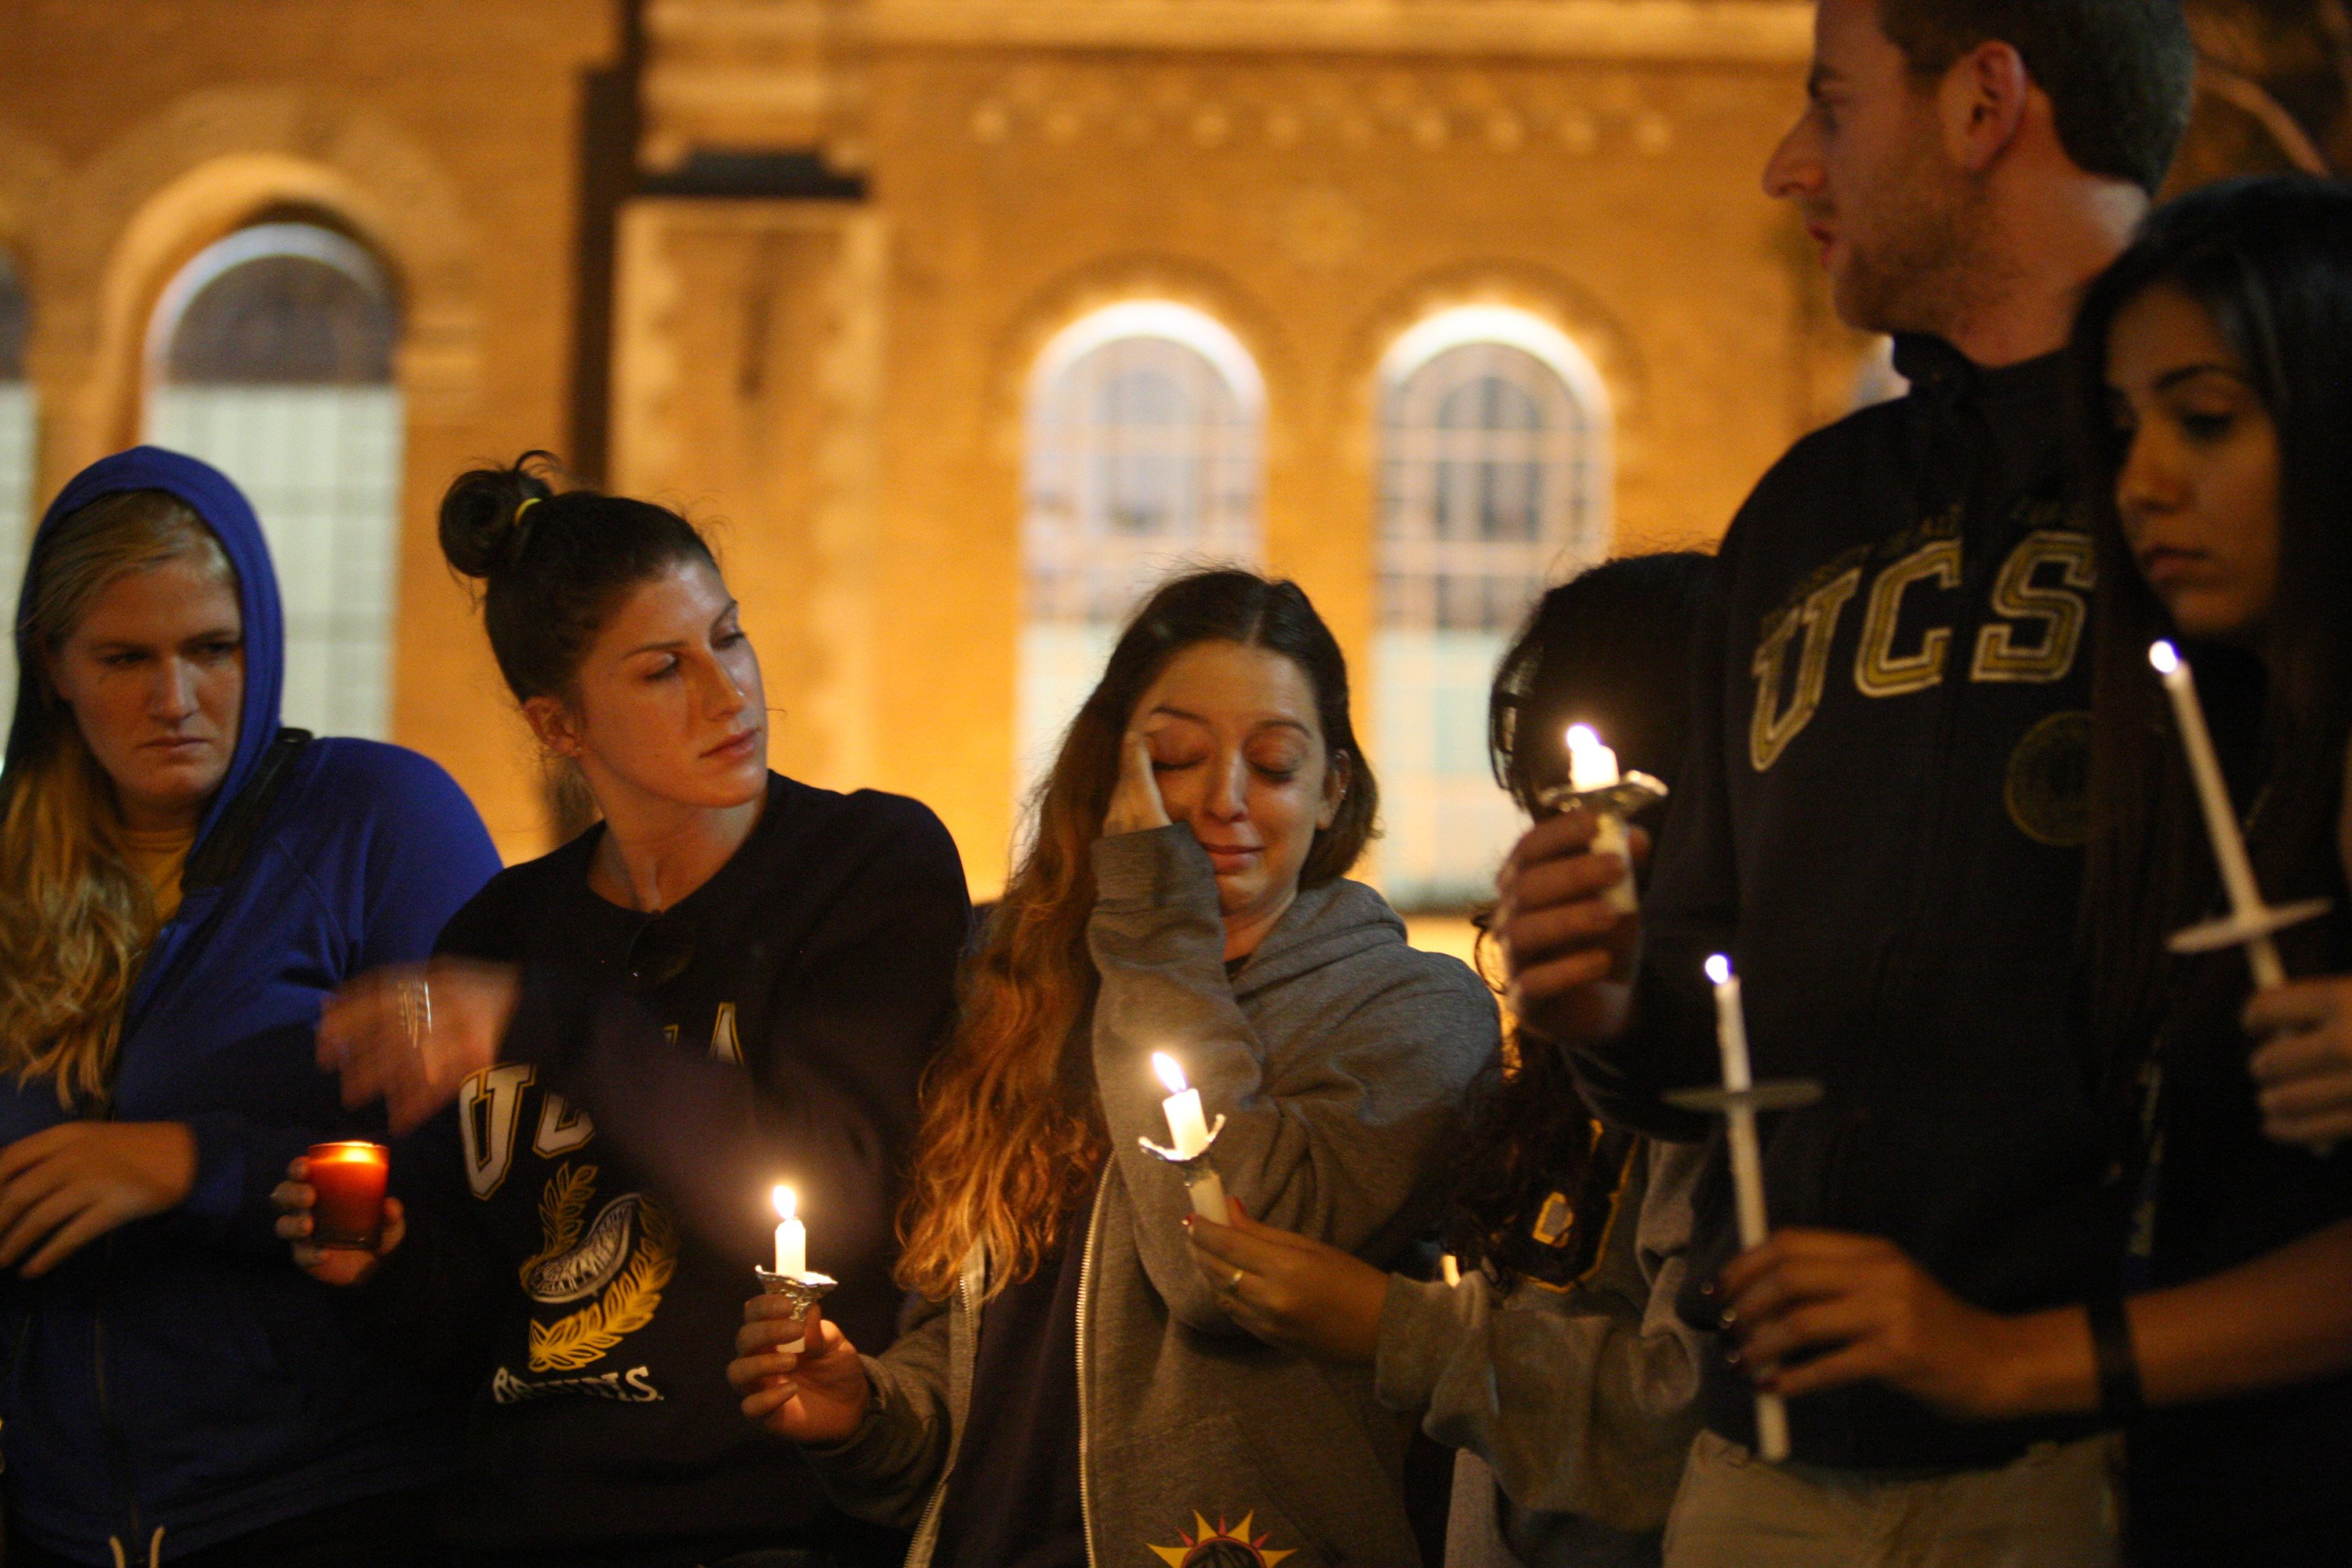 Students of UCSB and UCLA mourn at a candlelight vigil at UCLA for the victims of a killing rampage over the weekend near UCSB on May 26, 2014 in Los Angeles, Calif.